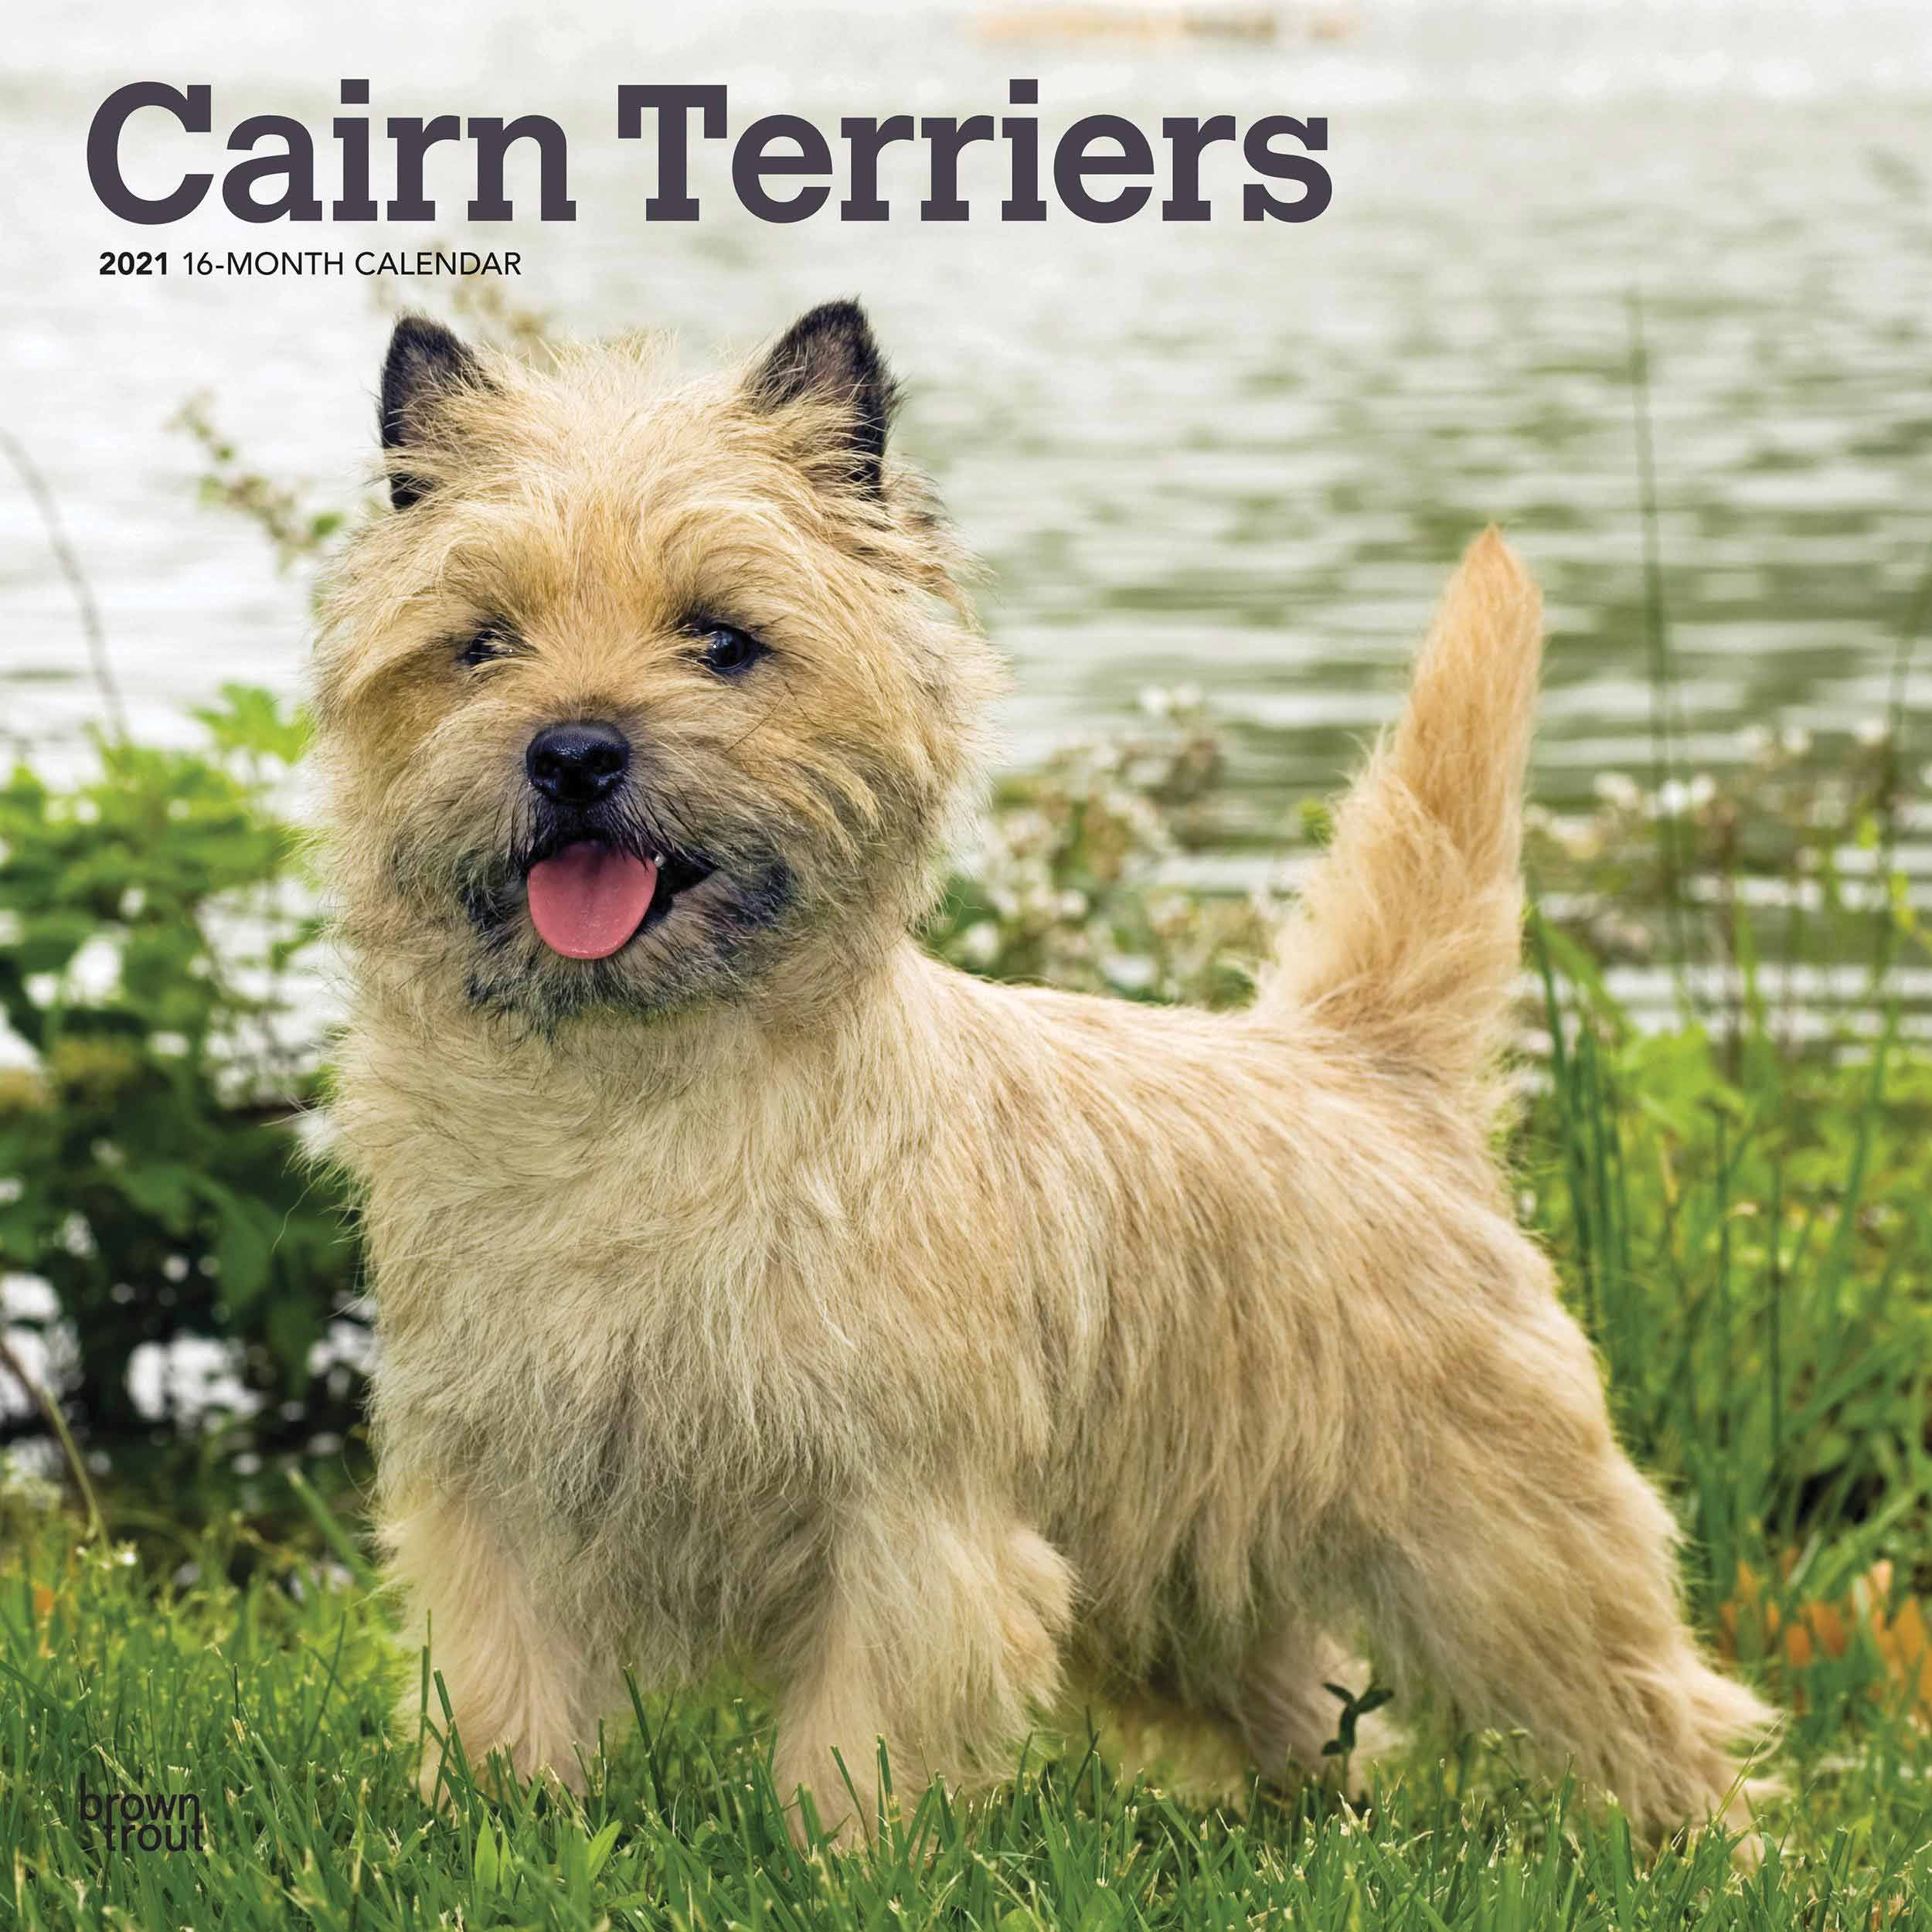 Small Blonde Terrier Dogs Breeds Google Search In 2020 Cairn Terrier Cairn Wall Calendar